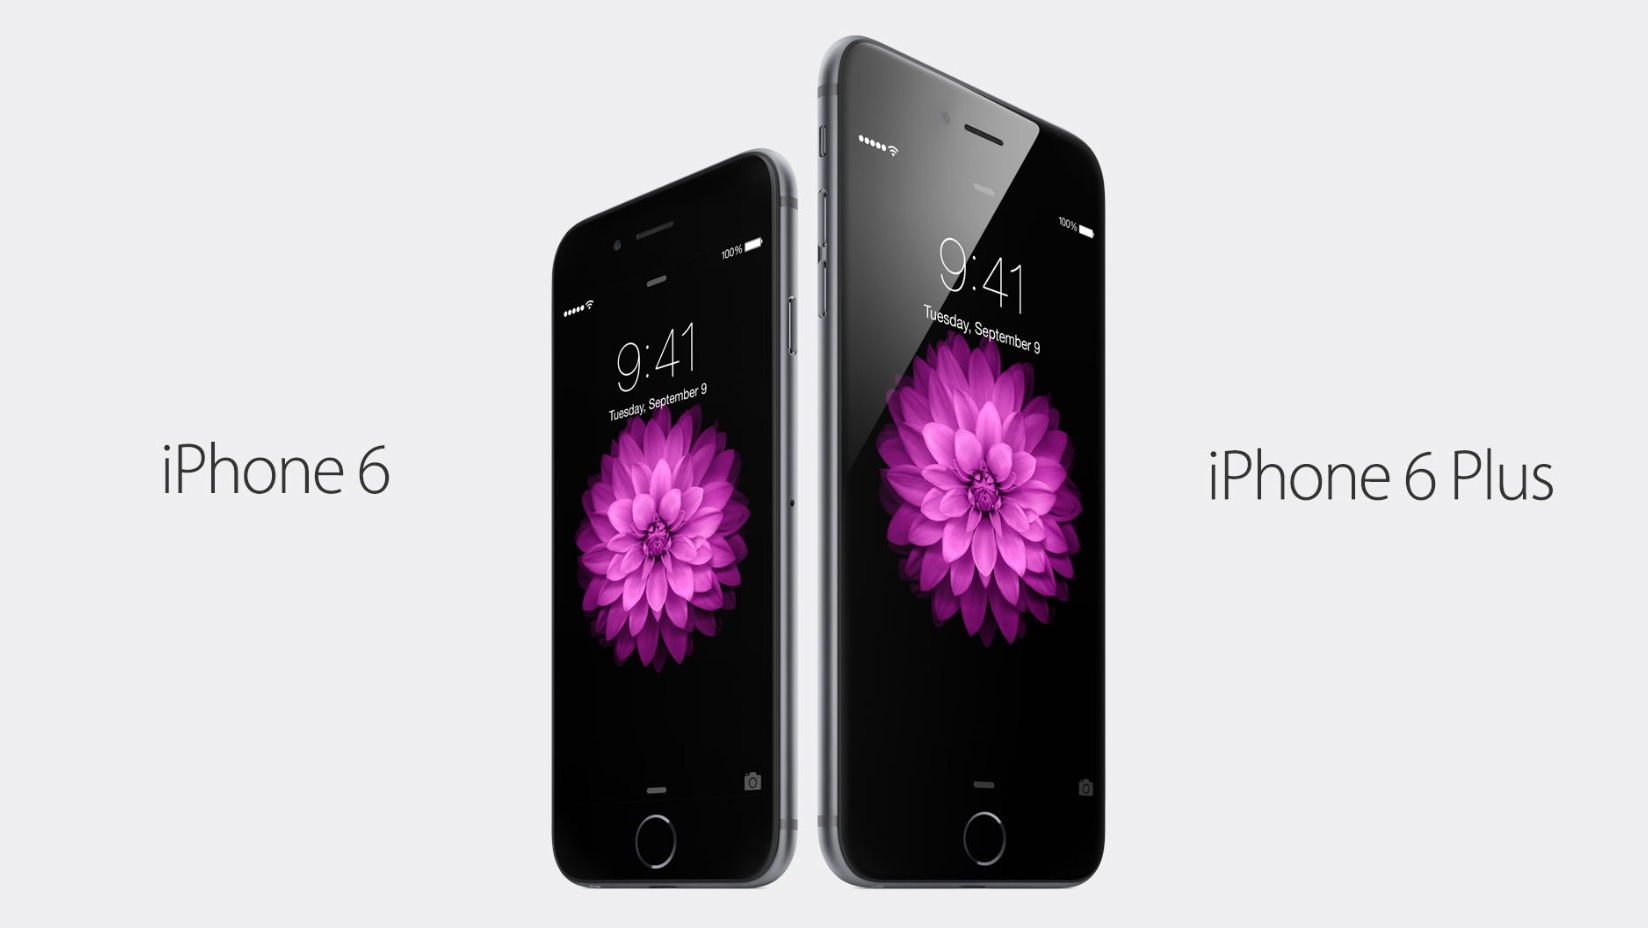 iPhone 6, iPhone 6 Plus: 4